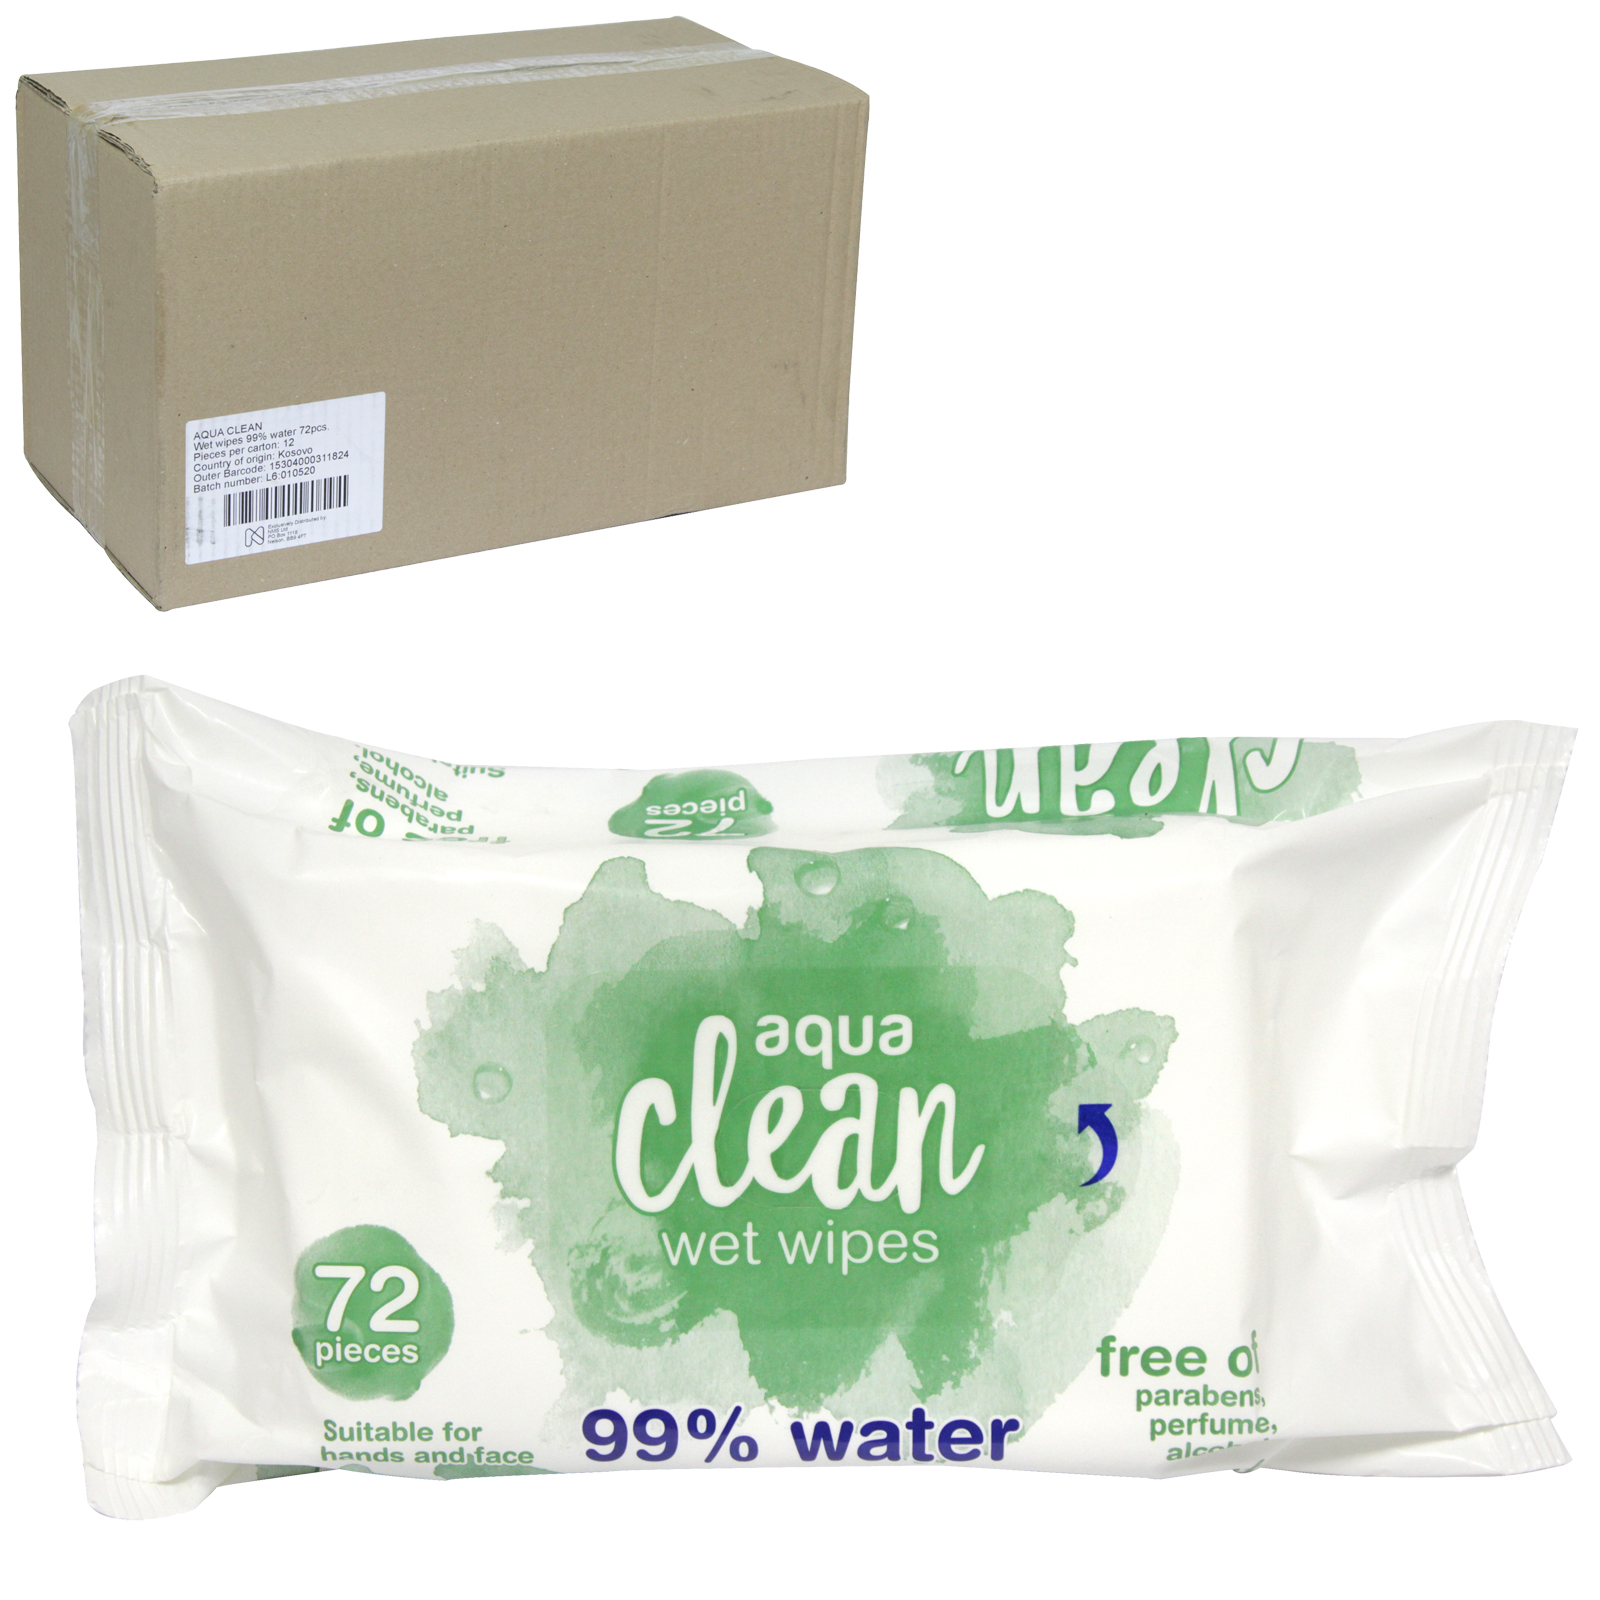 AQUA CLEAN WET WIPES 72'S 100% BIODEGRADABLE 99% WATER FREE OF PARBENS X12